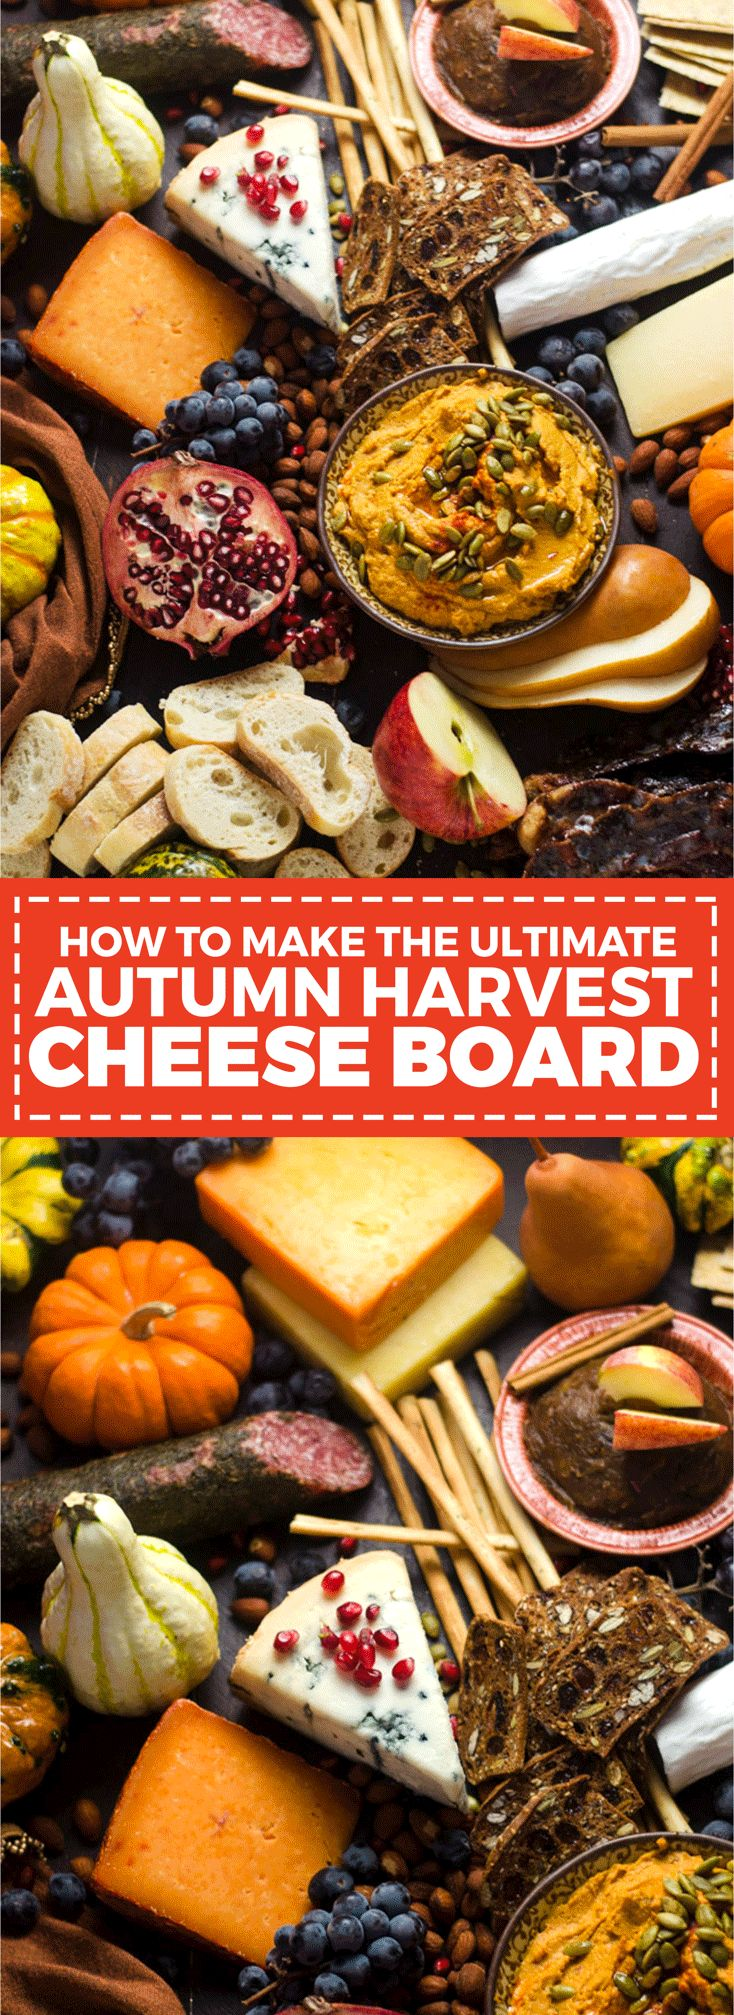 How To Make The Ultimate Autumn Harvest Cheese Board. Tips on selecting the best ingredients, plus recipes for Smoky Chipotle Pumpkin Hummus, Candied Bacon, and Bourbon Apple Butter! This is how you REALLY do Thanksgiving appetizers.   hostthetoast.com